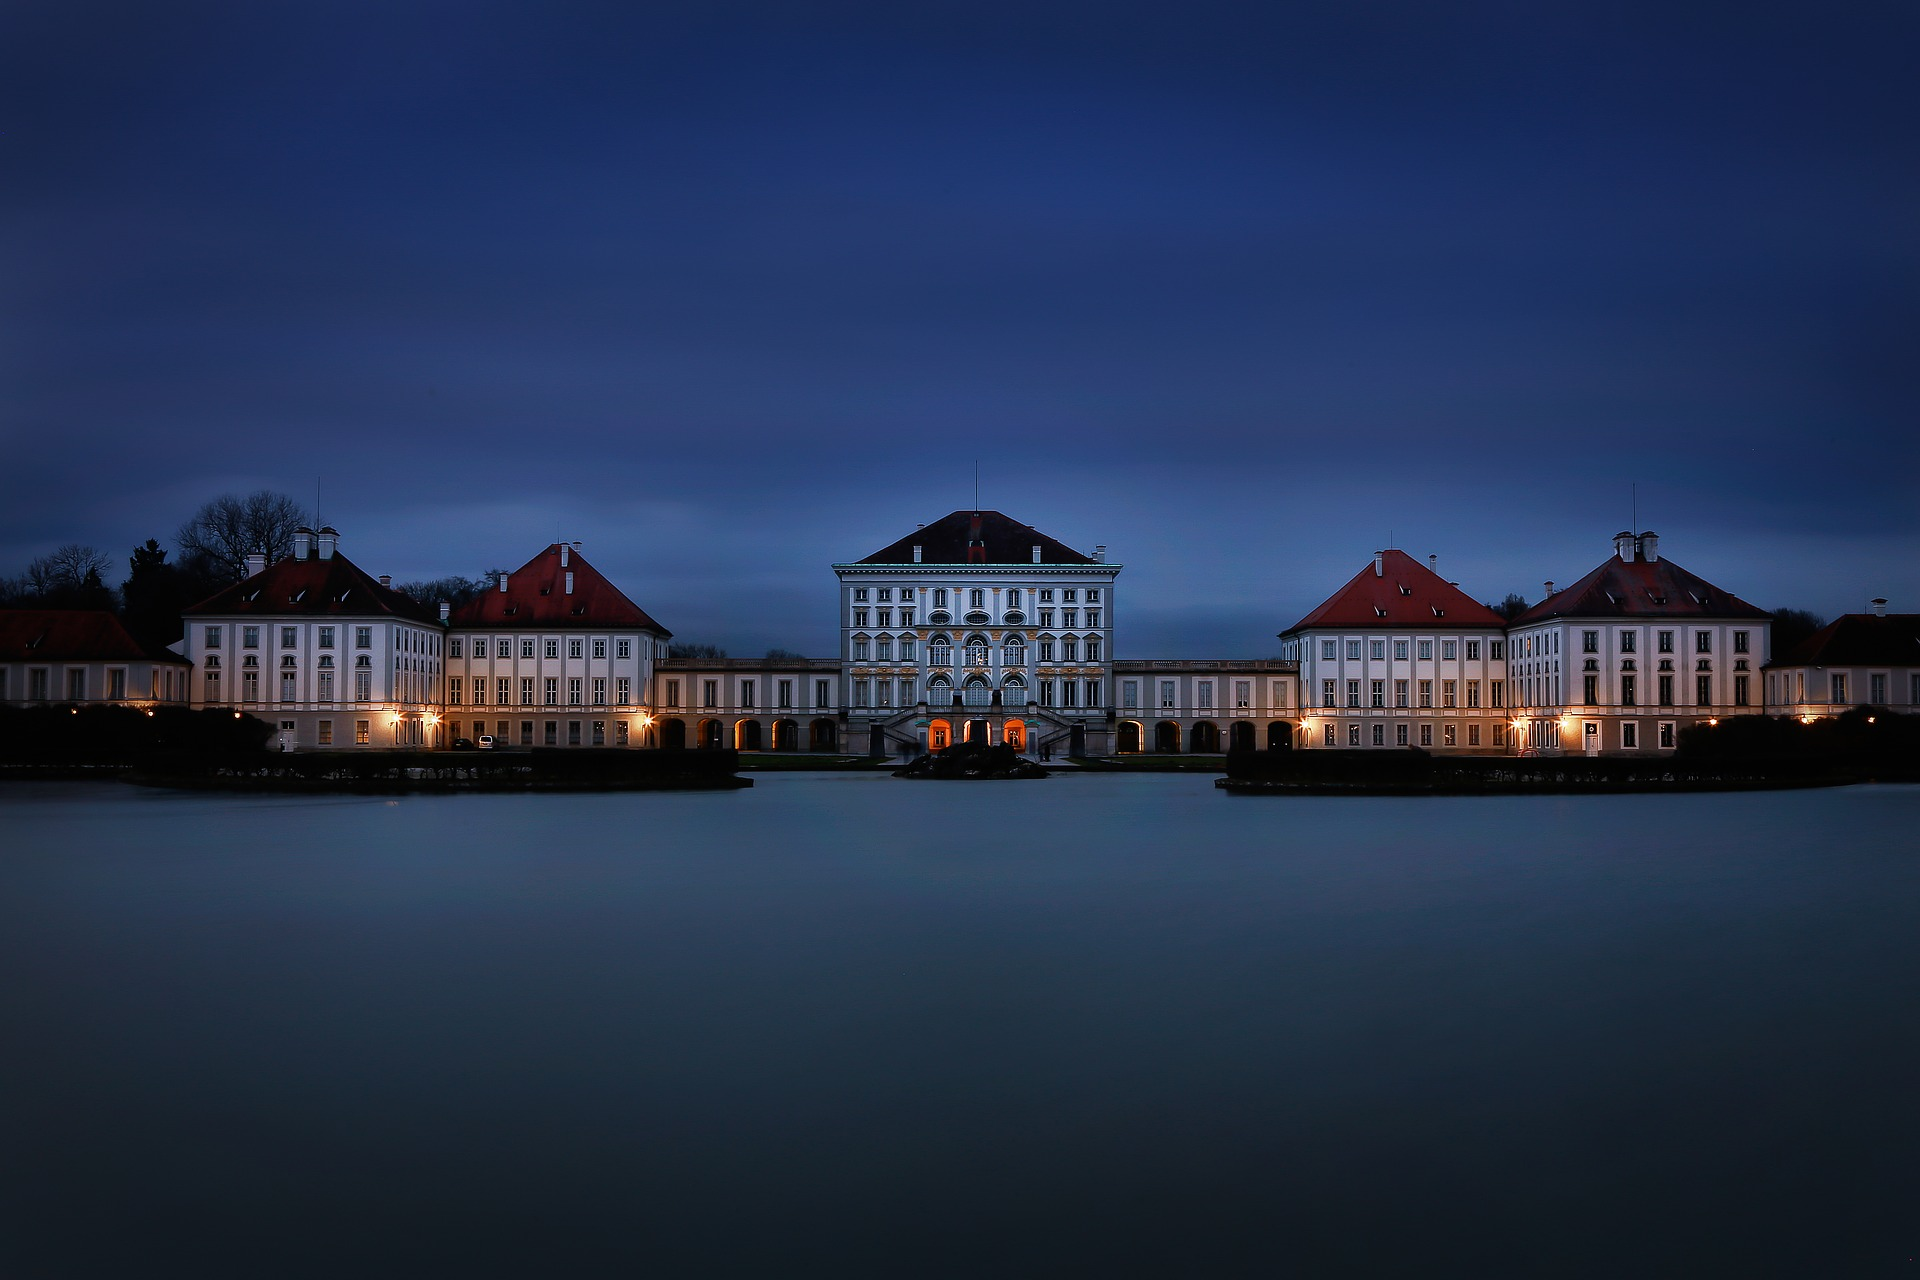 Munich_Palais_Nymphenburg_1_CC0.jpg?1550304406